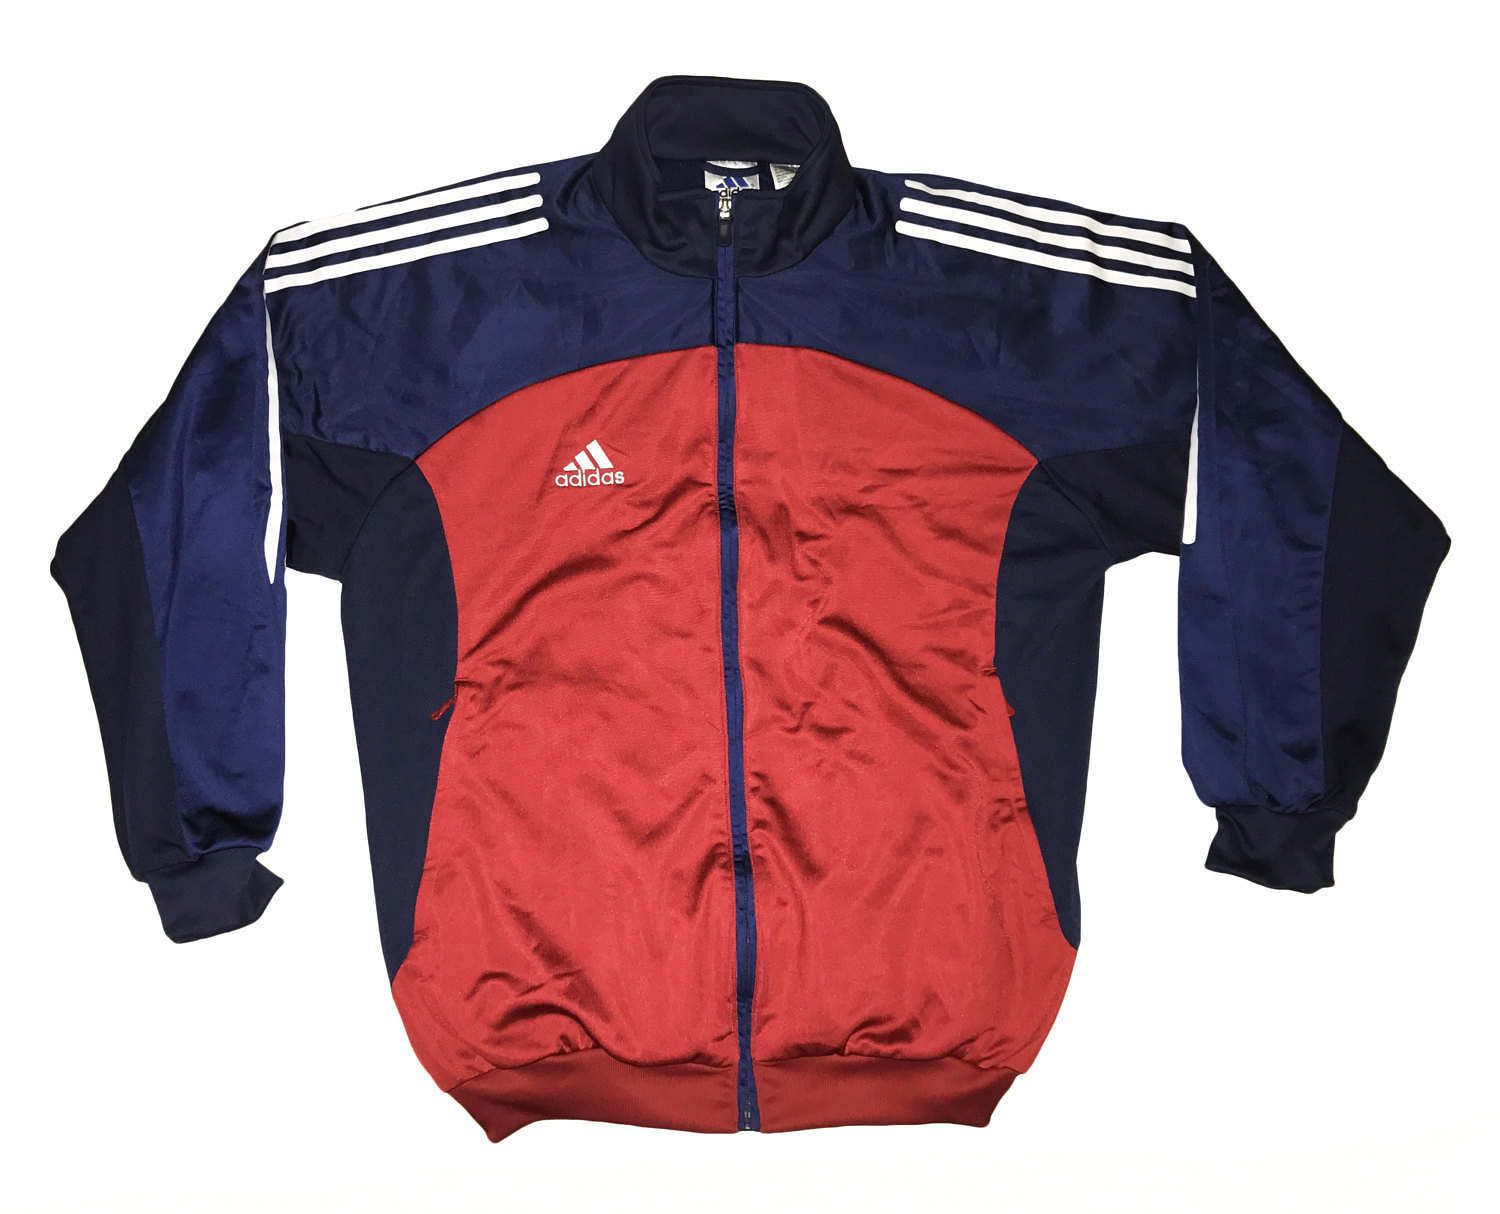 Vintage 90s Adidas Tracksuit Top Jacket Color Block Blue Red White